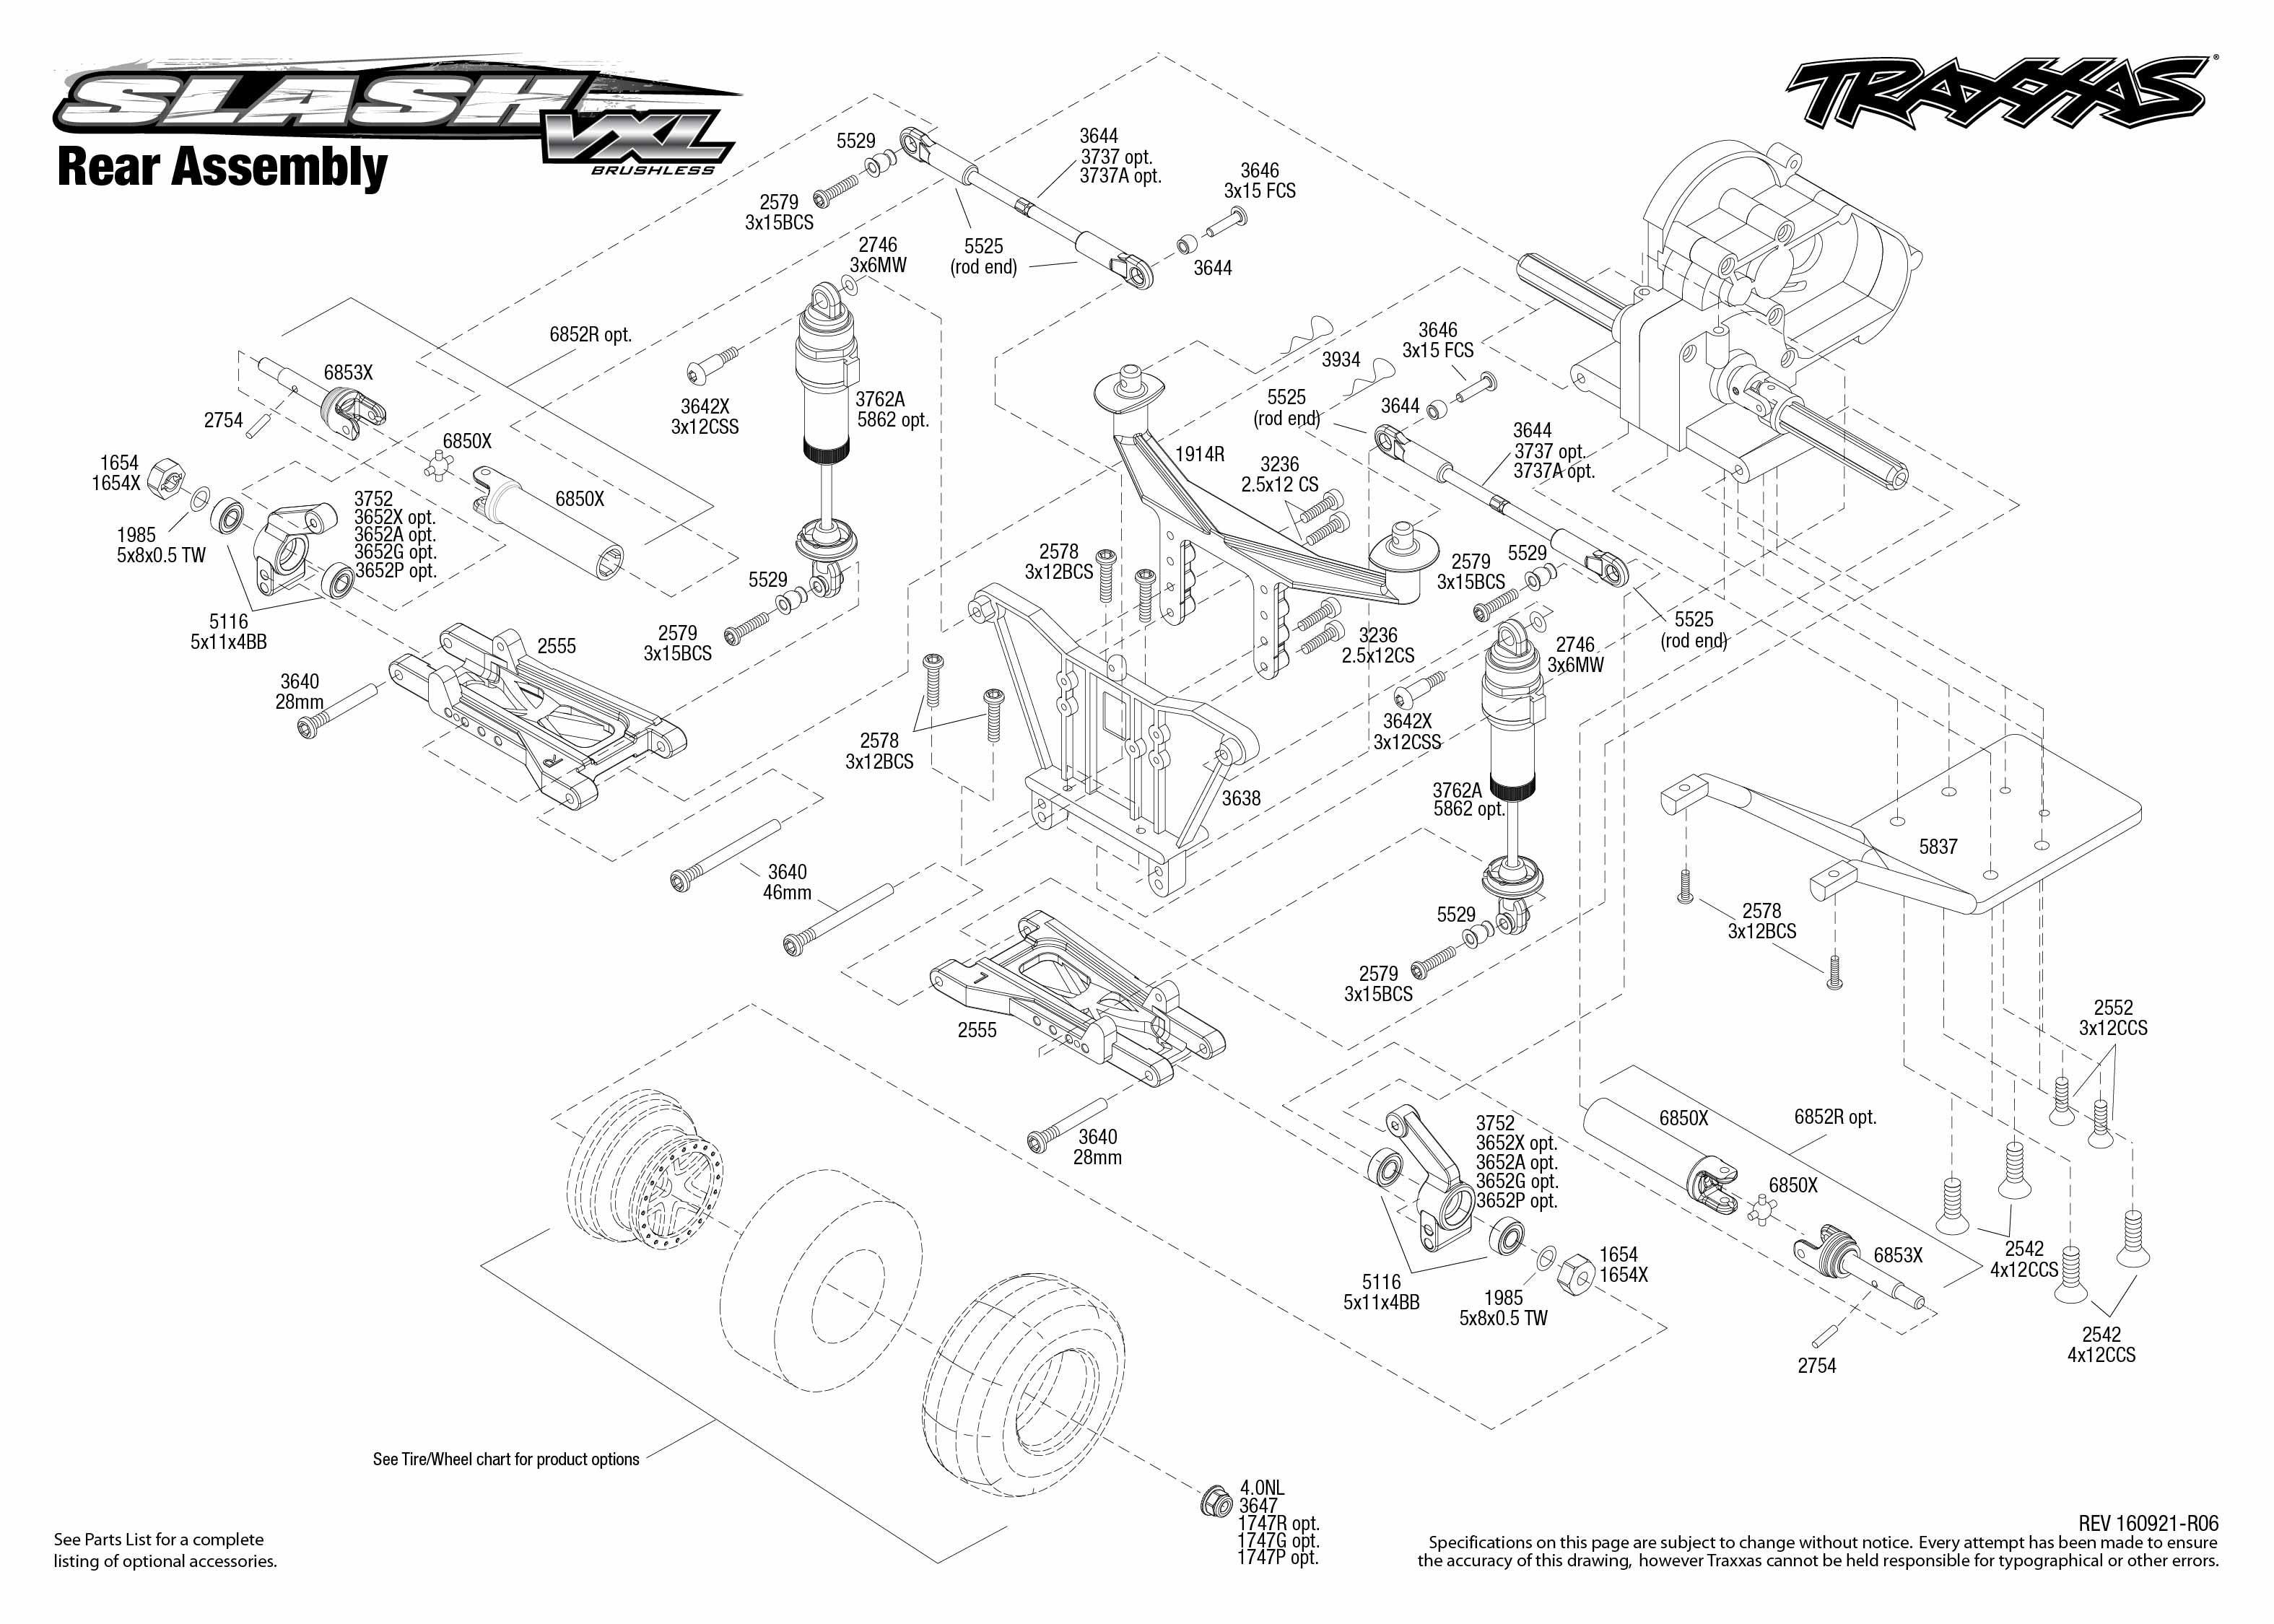 traxxas slash user manual how to and user guide instructions u2022 rh taxibermuda co traxxas stampede 4x4 vxl exploded view traxxas stampede vxl exploded view